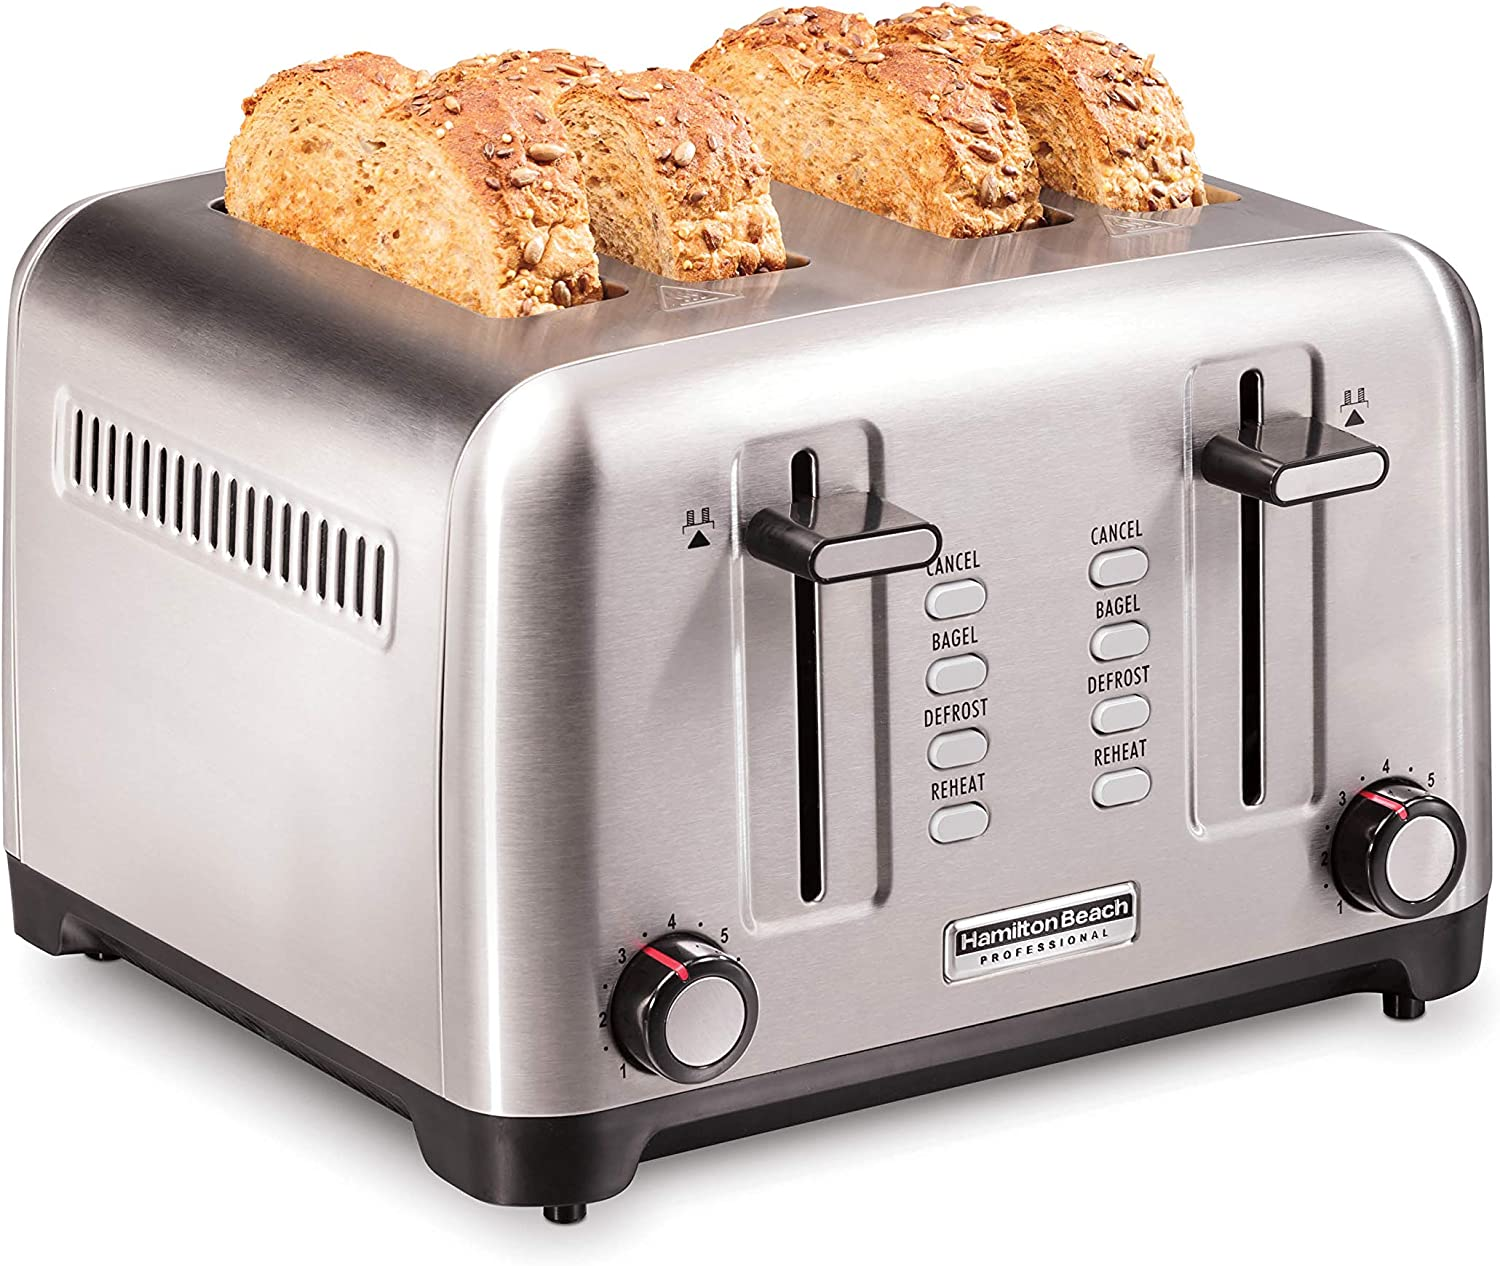 Hamilton Beach Professional 4 Slice Toaster, with Bagel, Defrost & Reheat Settings, Stainless Steel (24990)